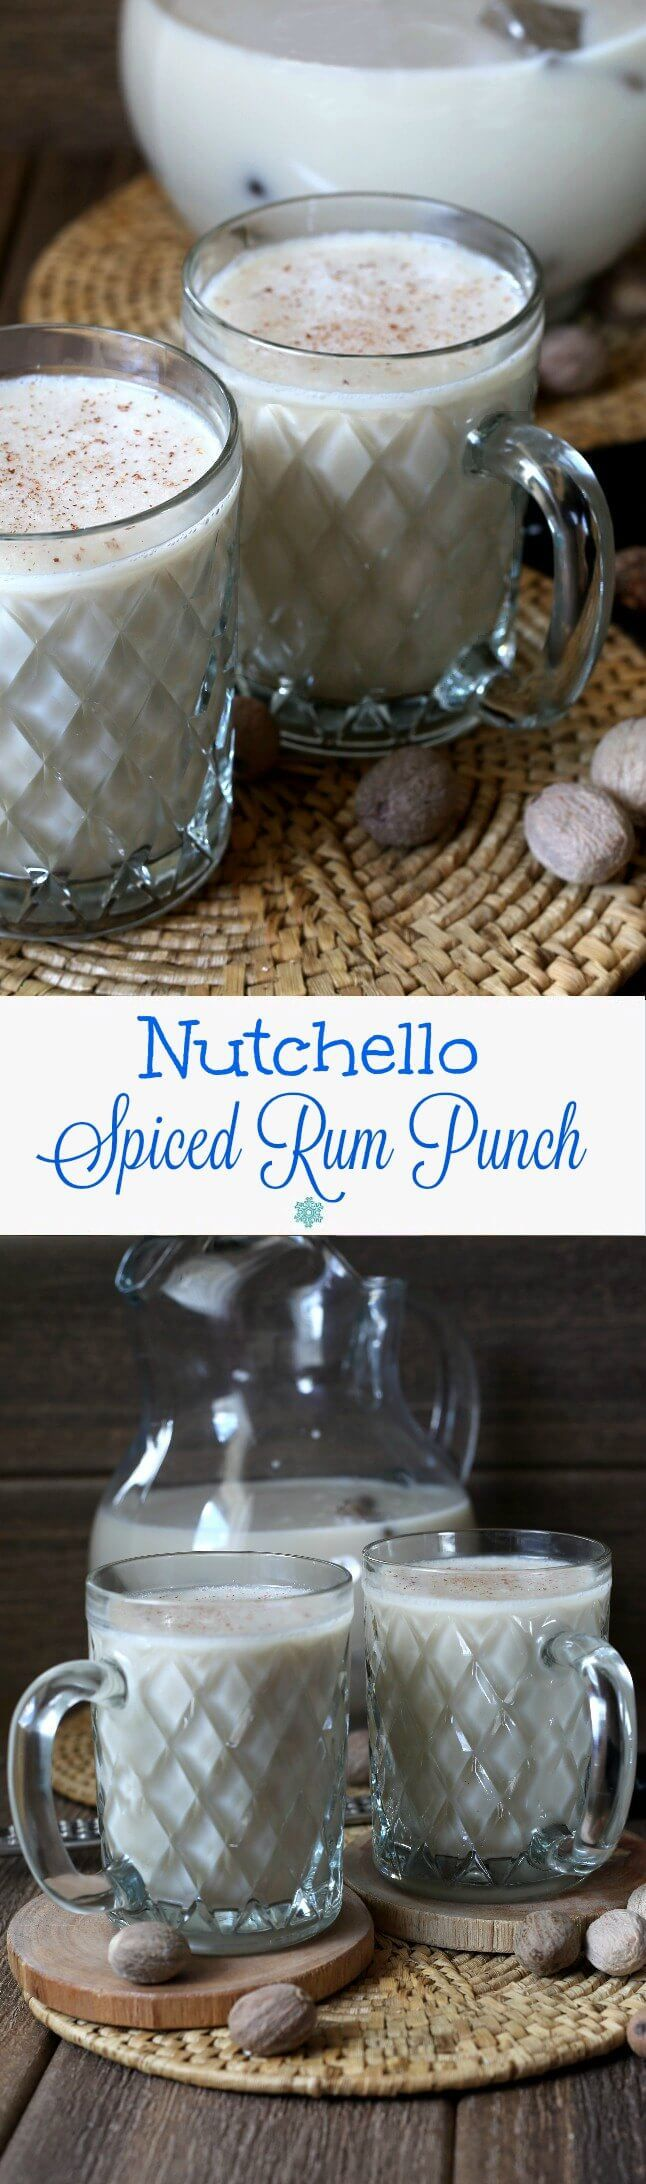 Nutchello Spiced Rum Punch only has 3 ingredients and it is a uniquely tasty and refreshing punch! It goes down so easy with a sweet and nutty spiced kick. @lovemysilk  #LoveMySilk